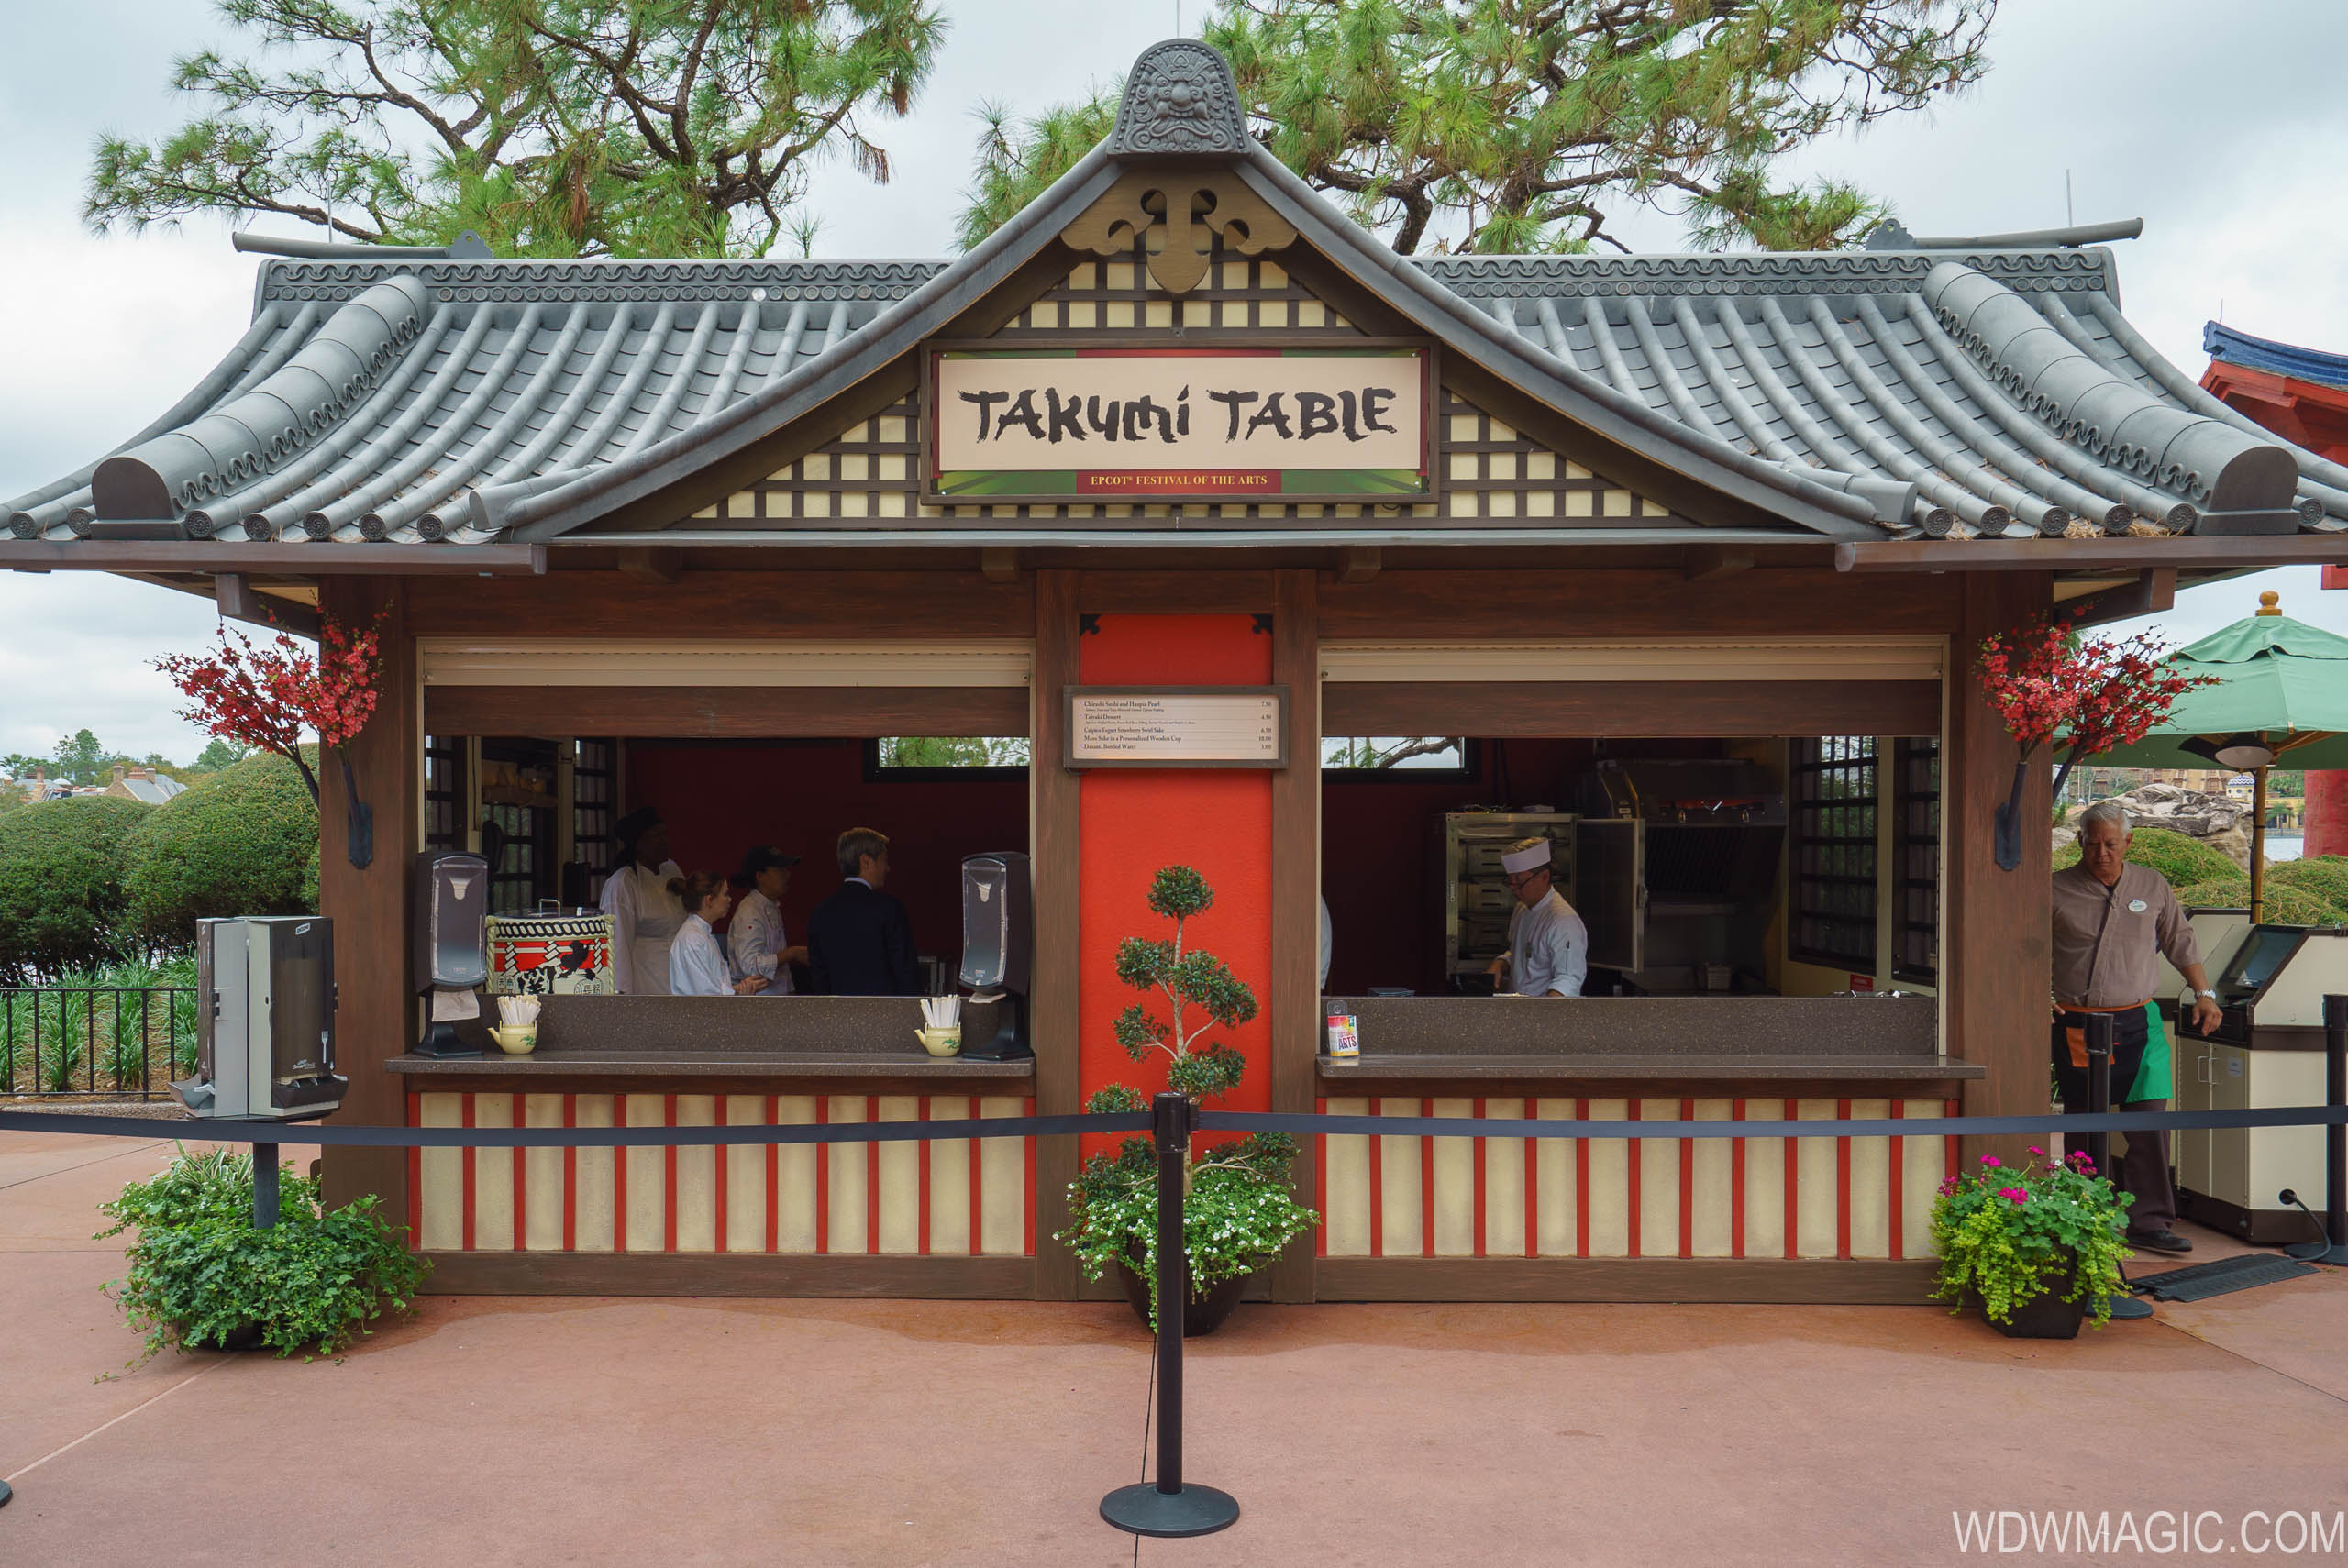 2018 Epcot Festival of the Arts Food Studio kiosks and menus